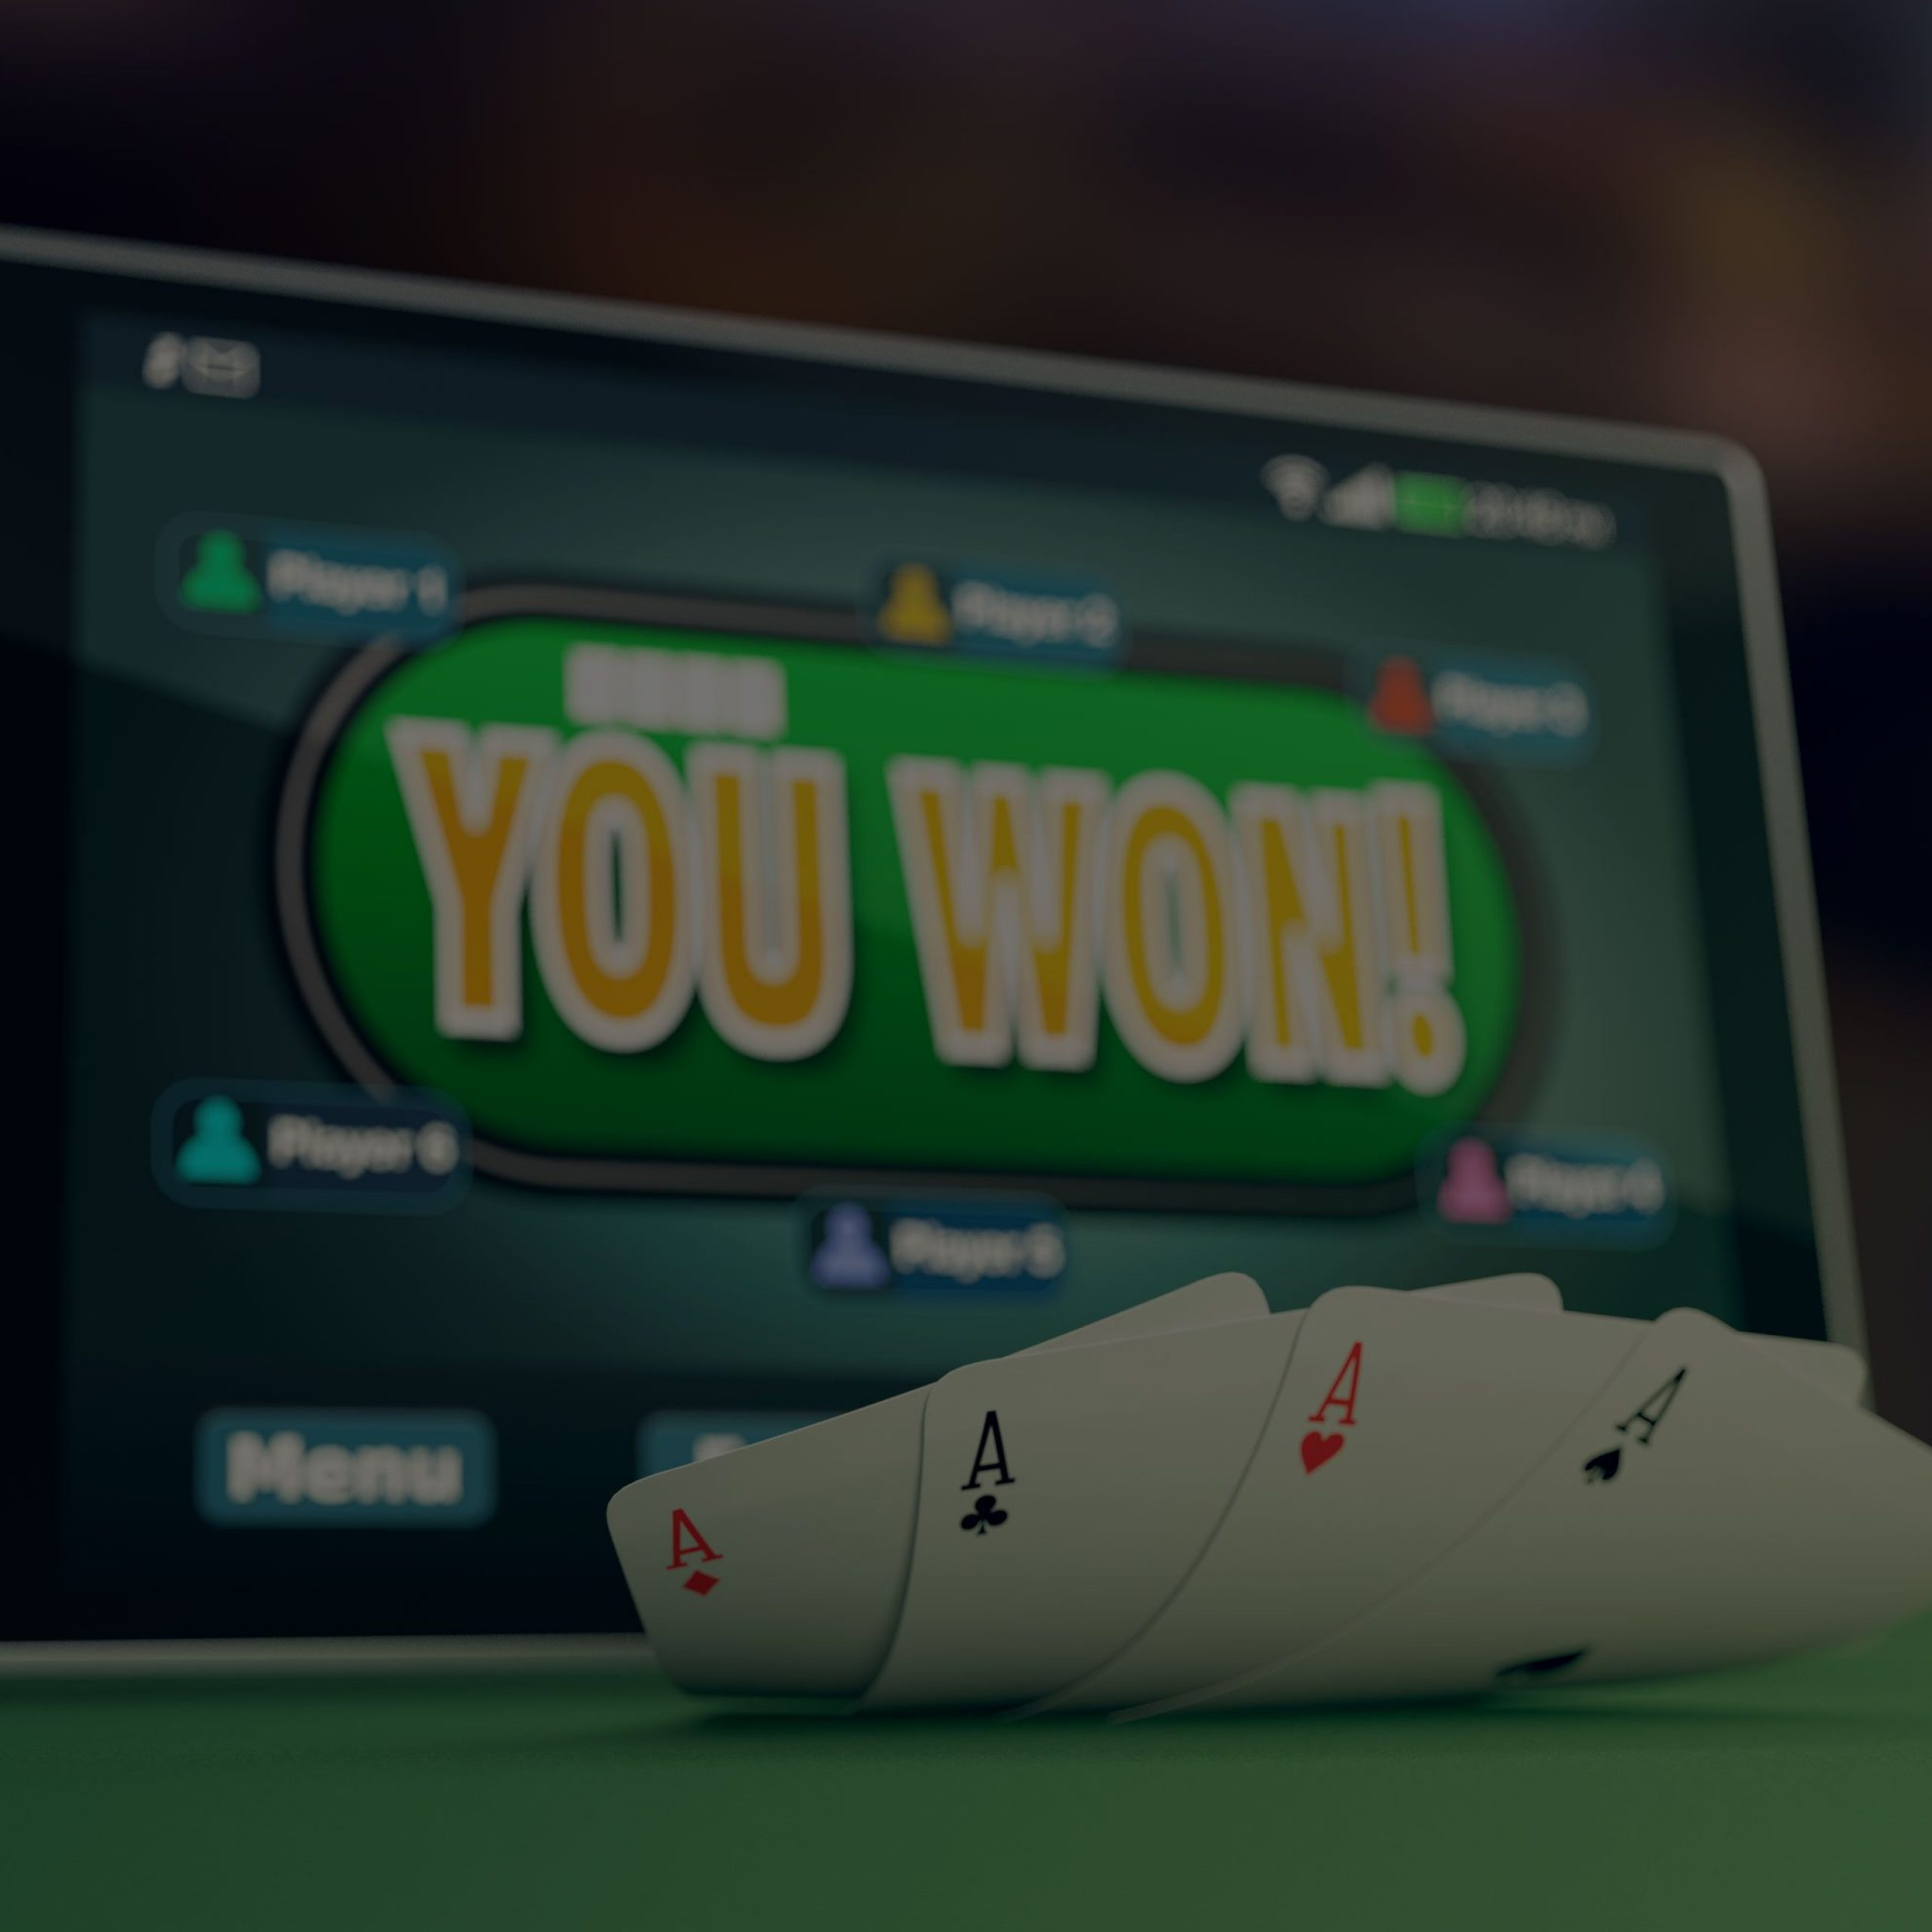 Image of a video poker screen, displaying the text You Won and four aces